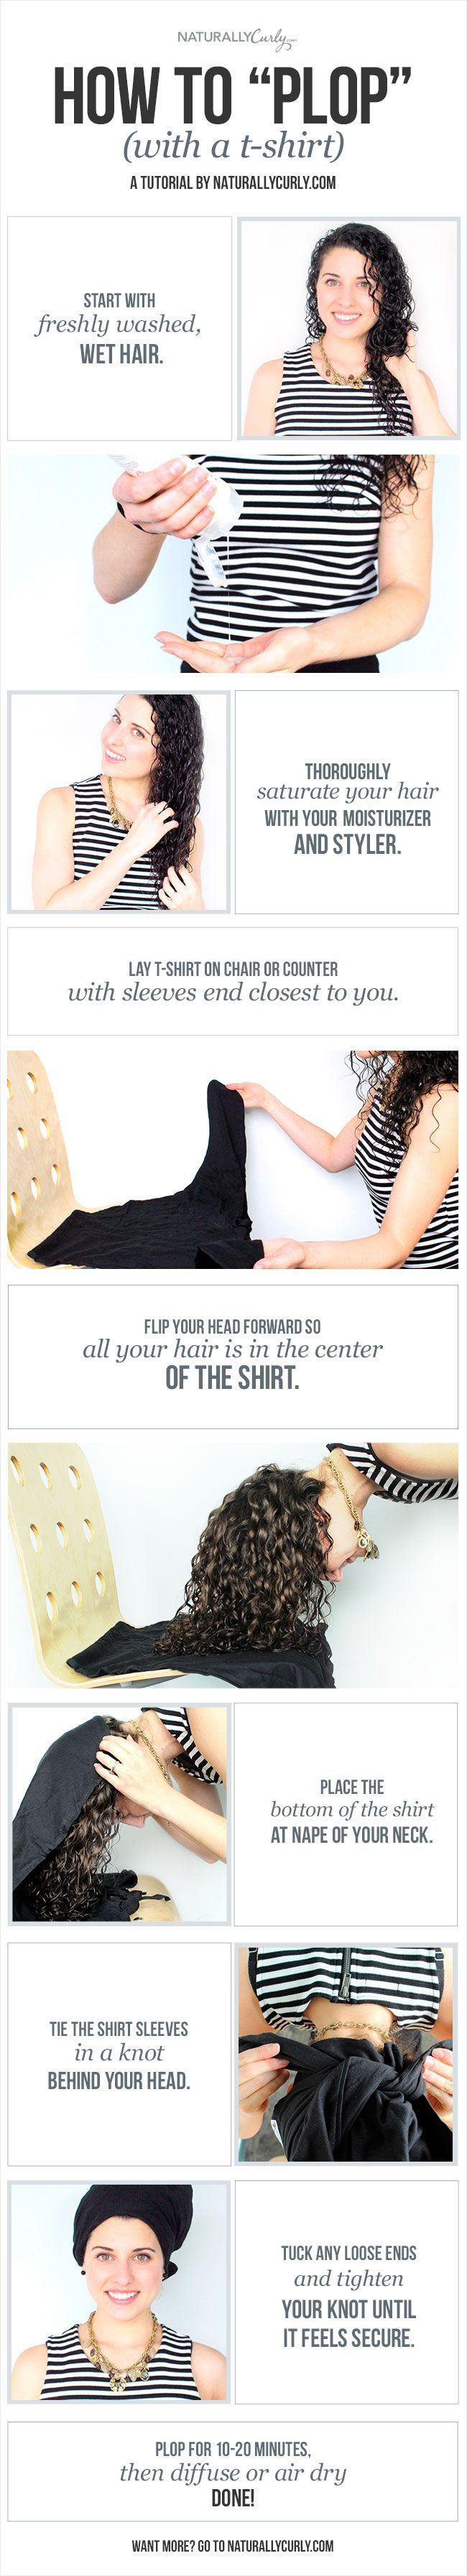 Cut down your air drying time without ruining your curls!                                                                                                                                                                                 More